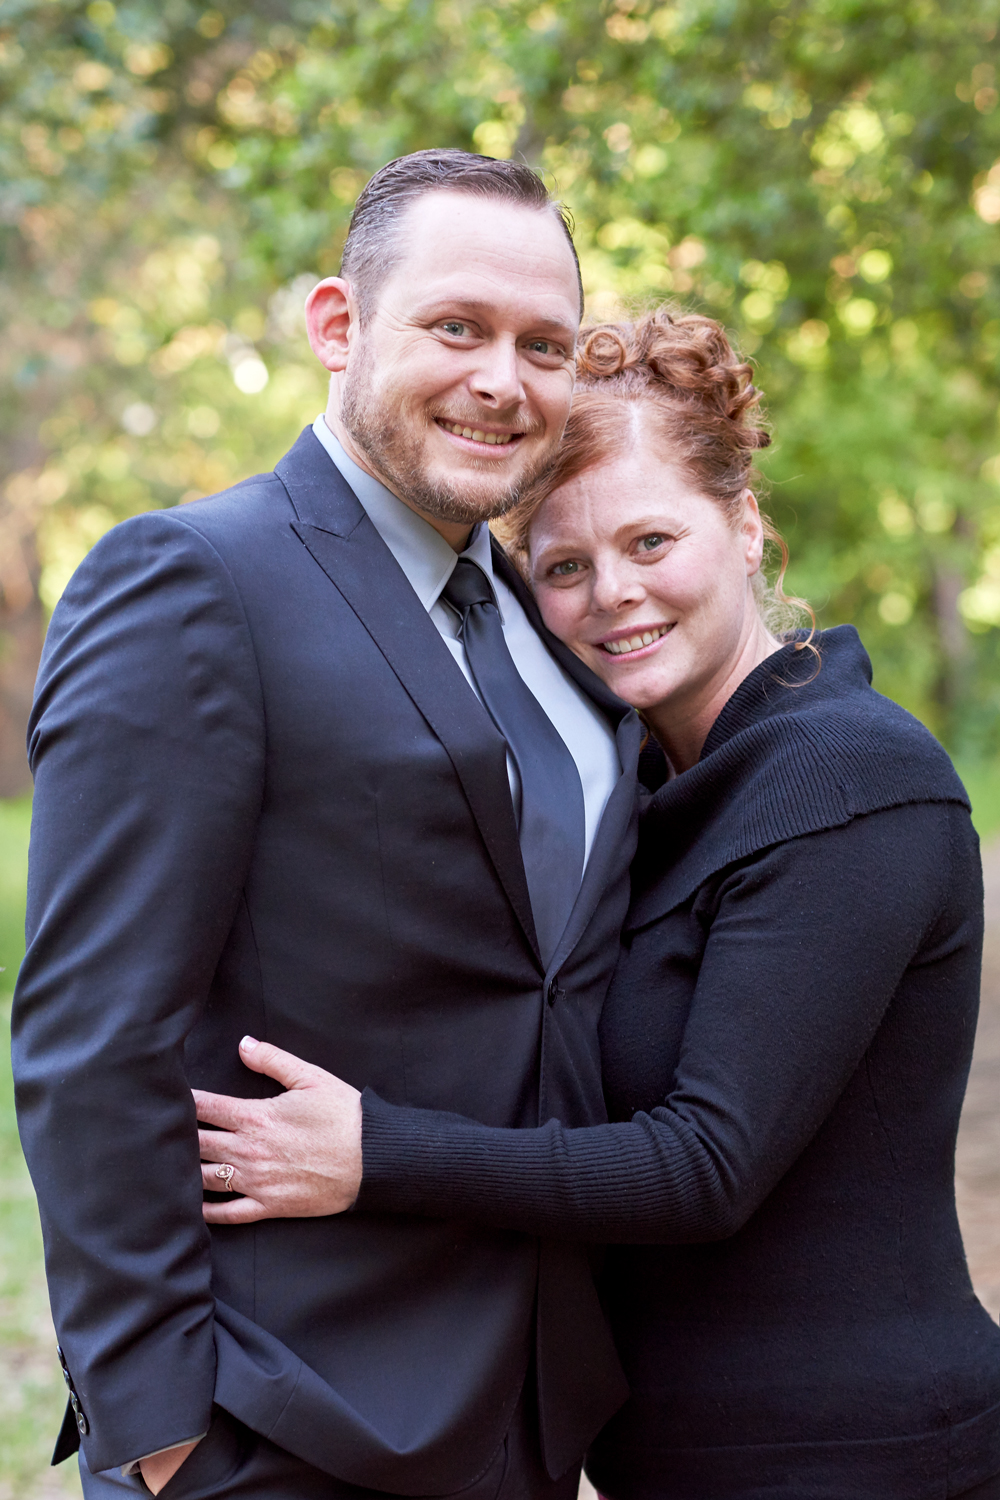 Mullens-Raley-Engagement-04-WEB.jpg